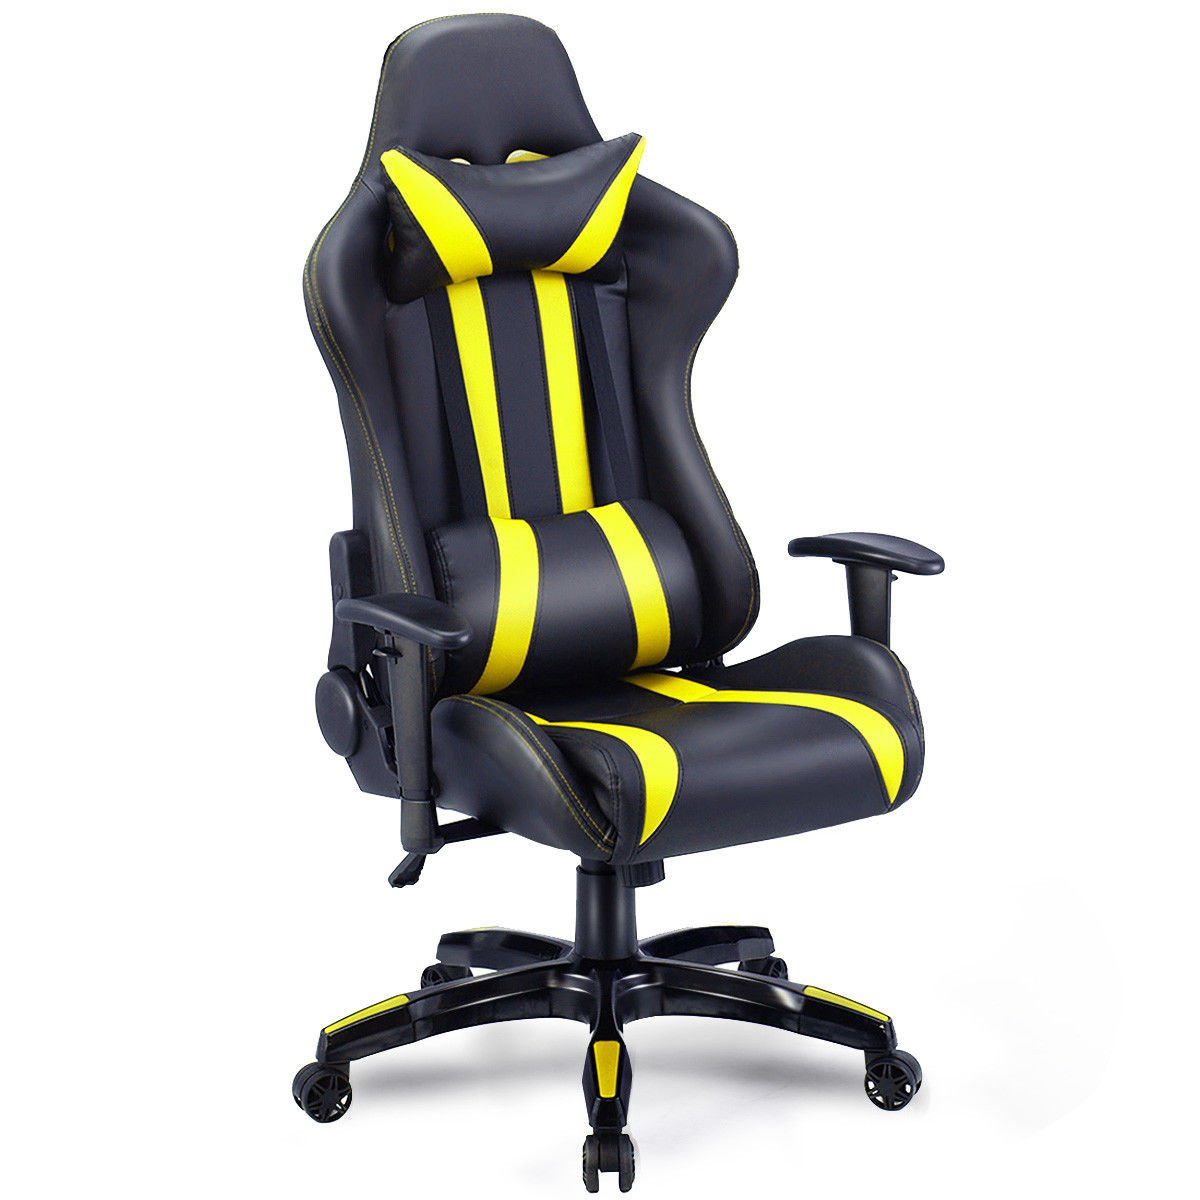 Giantex gaming chair racing style high back pu leather executive office chair with headrest and lumbar support ergonomic home office computer desk task